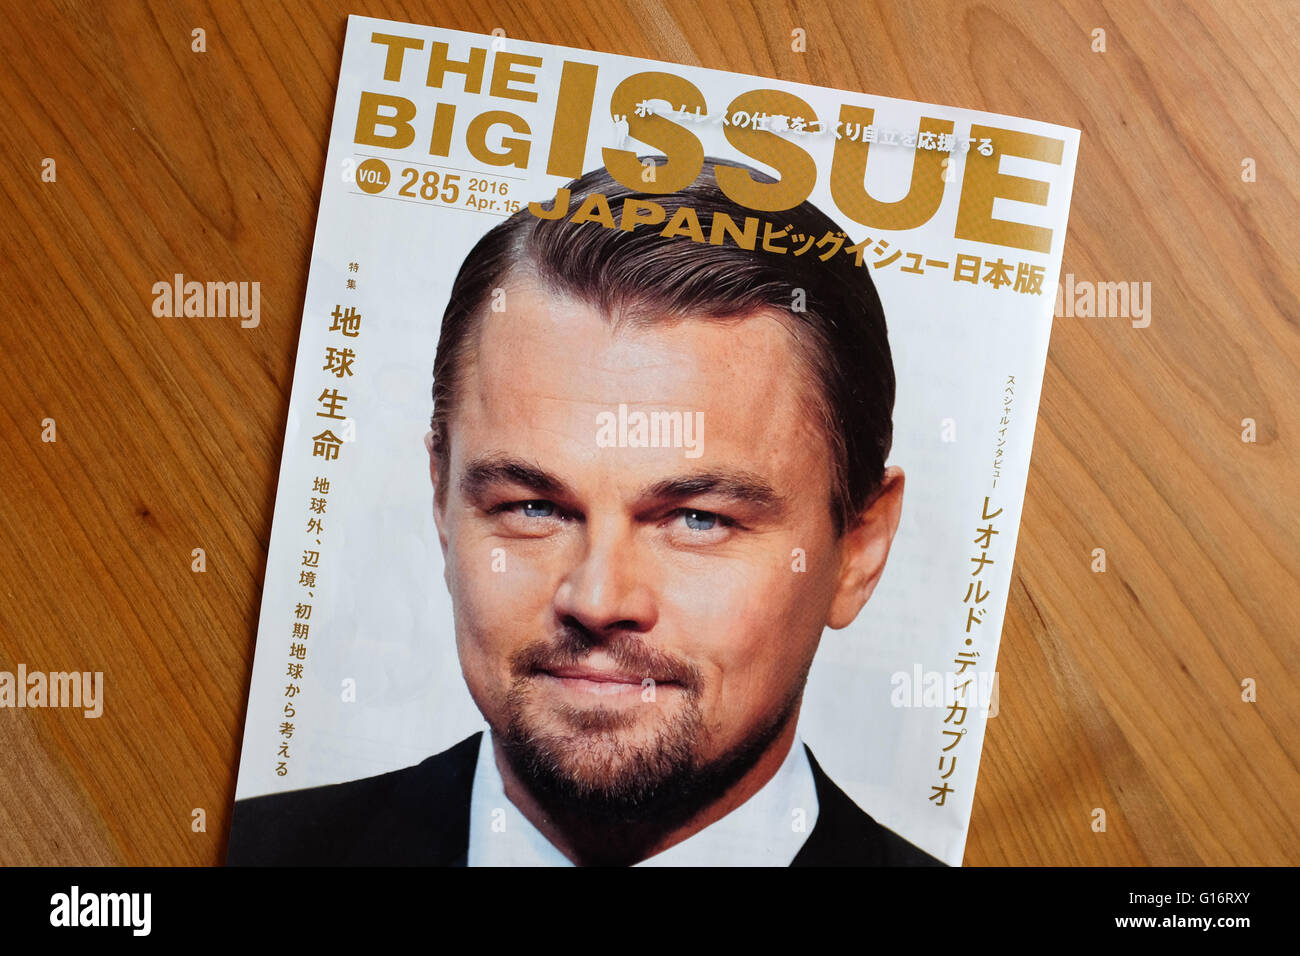 A 2016 edition of Japan's Big Issue, featuring Leonardo DiCaprio on the cover. - Stock Image